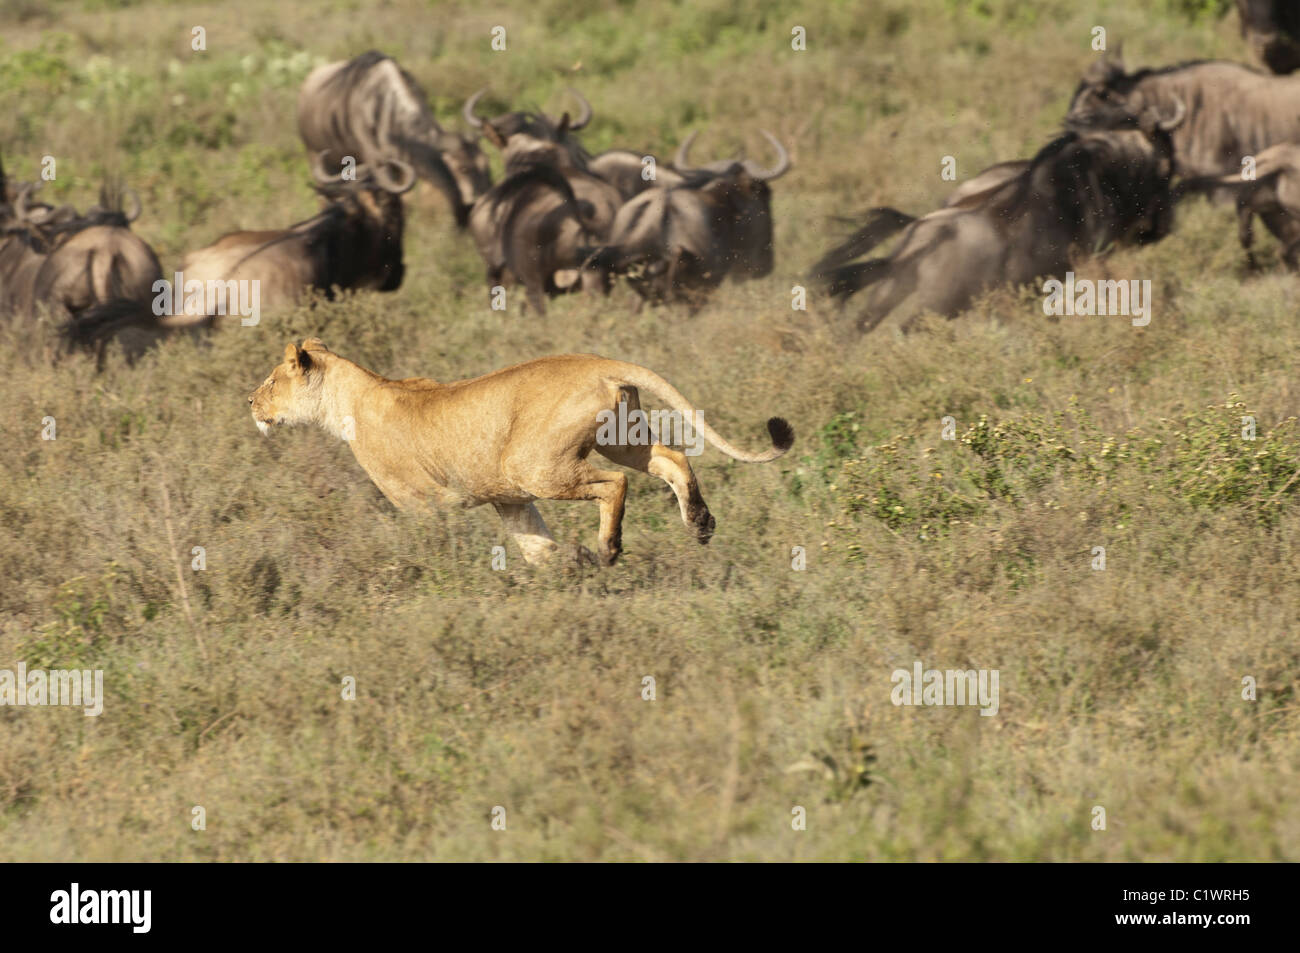 Stock photo of a lioness chasing a group of wildebeest. Stock Photo